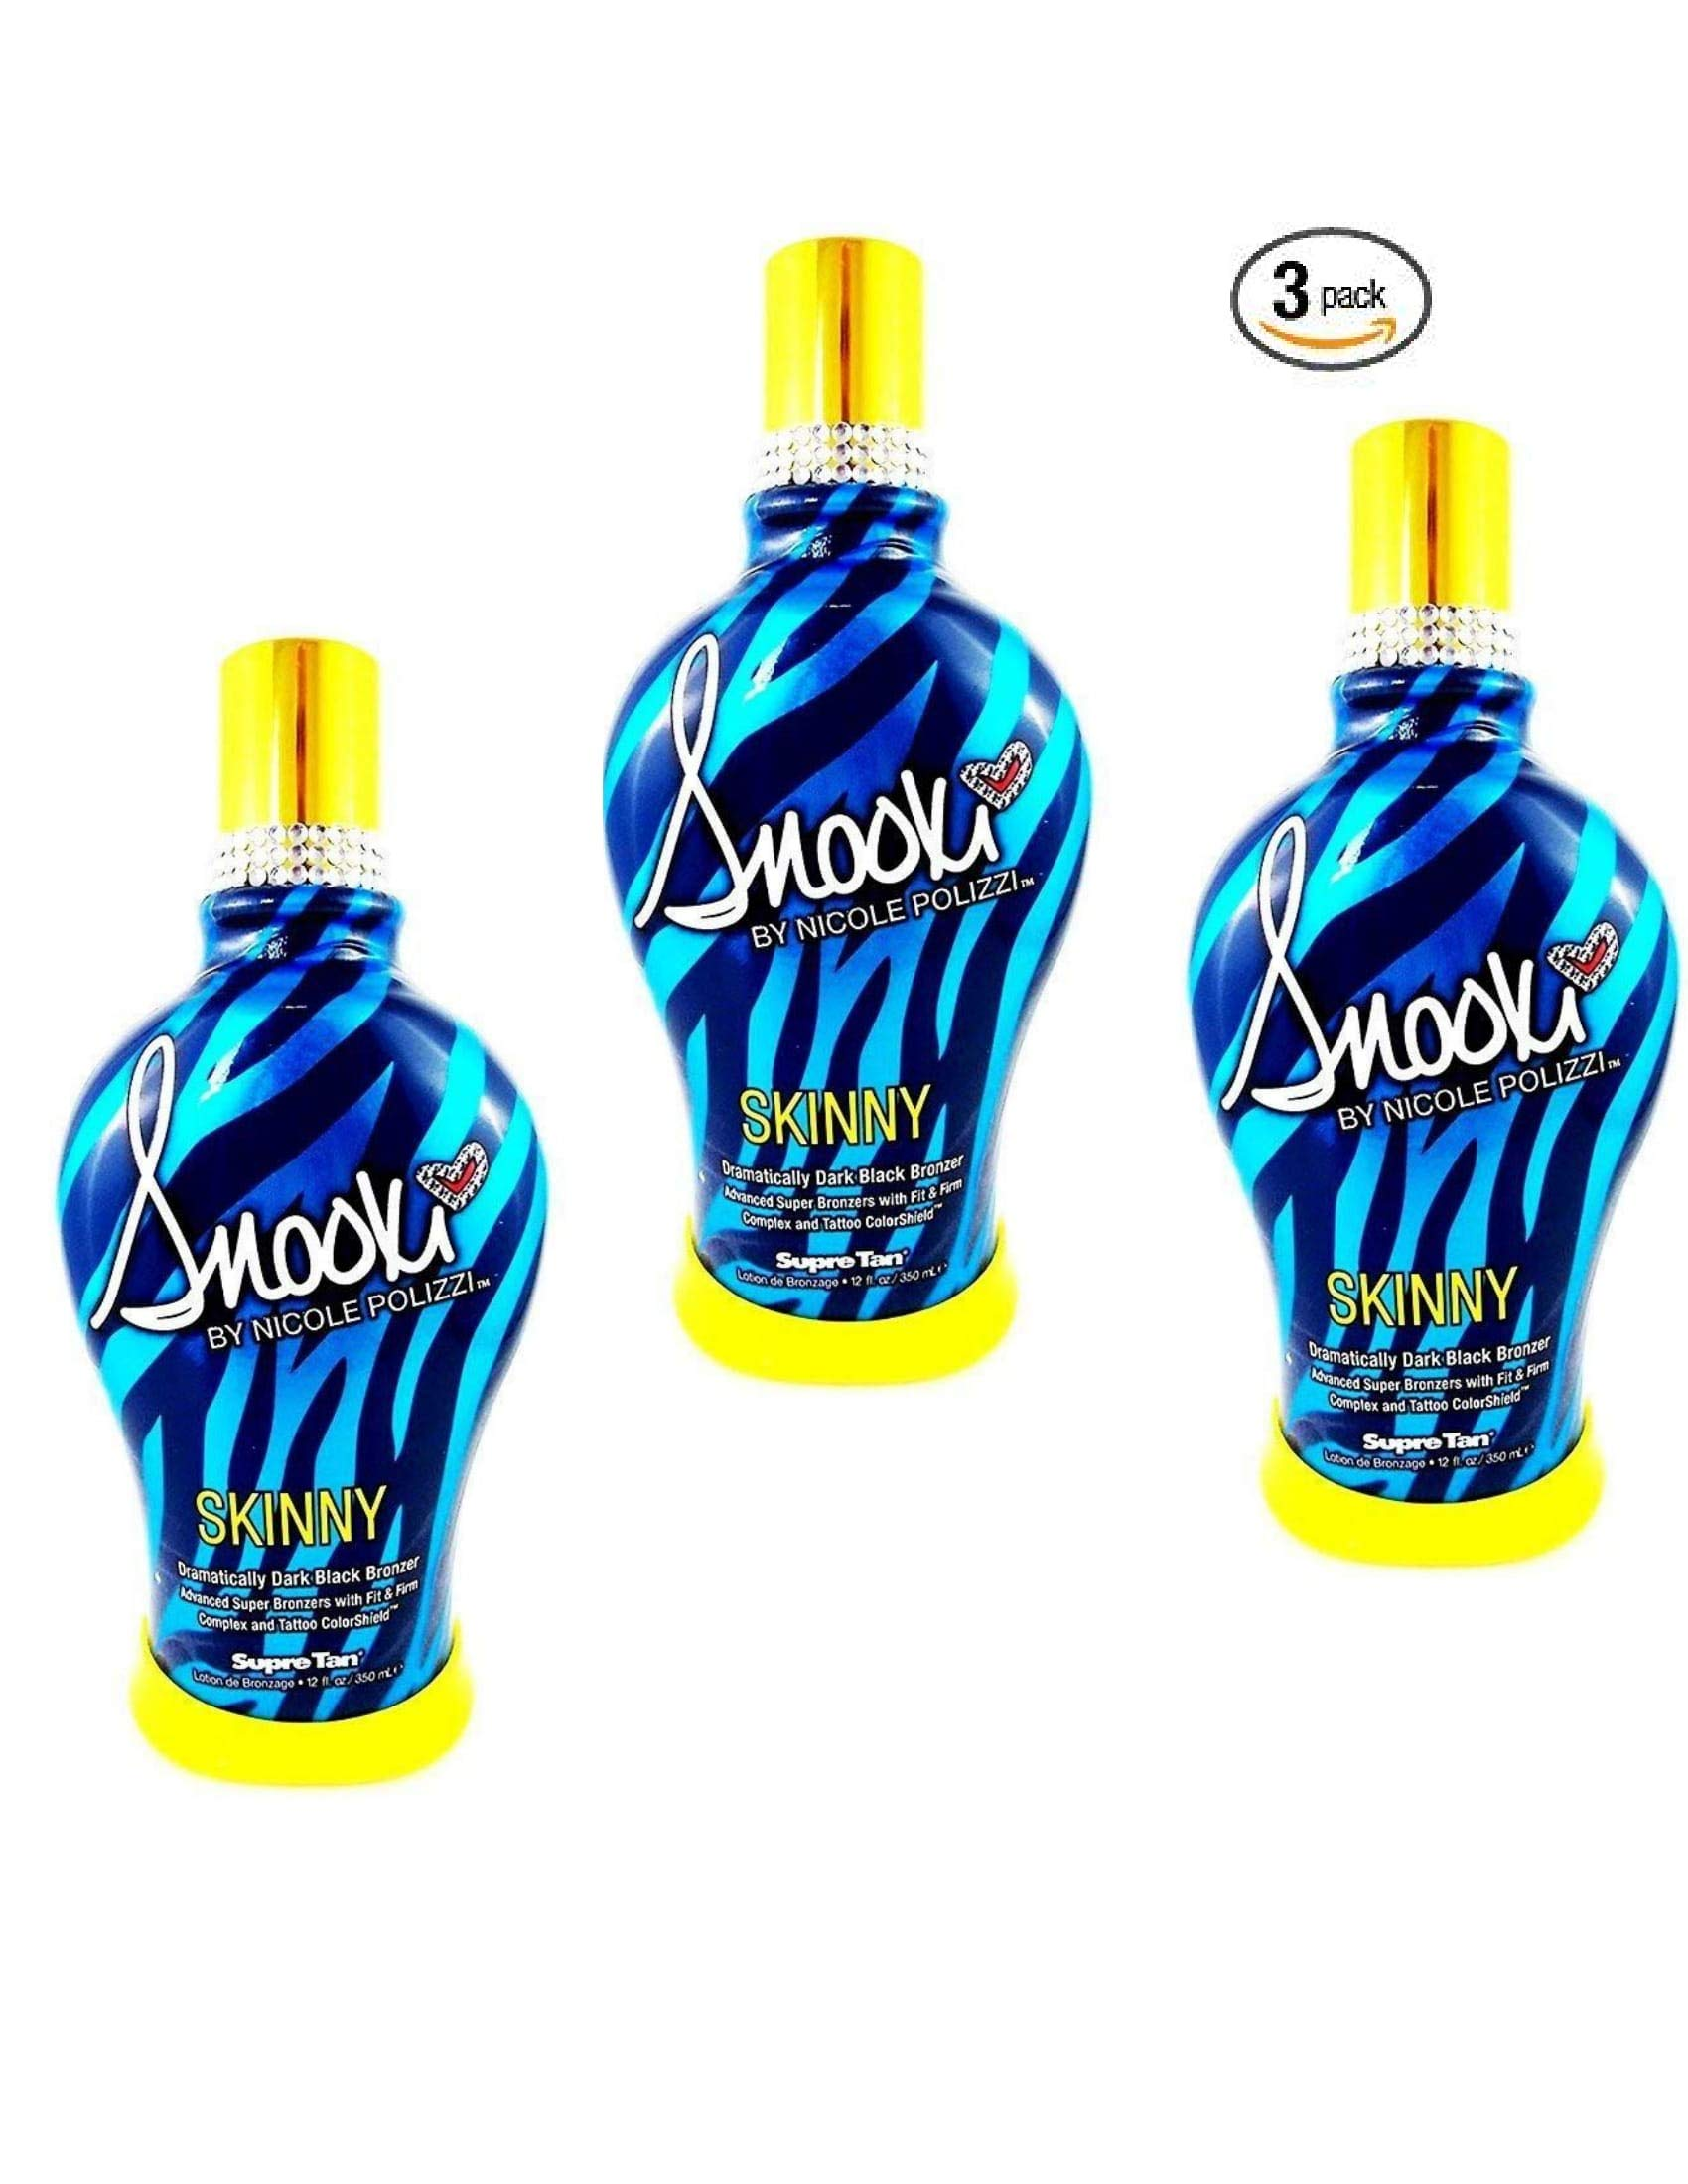 3 Pack of 2014 SNOOKI SKINNY DARK BLACK BRONZER FIRMING INDOOR TANNING BED LOTION SUPRE, 12 oz (Three Units Per Order, 36 FL OZ TOTAL) by Supre